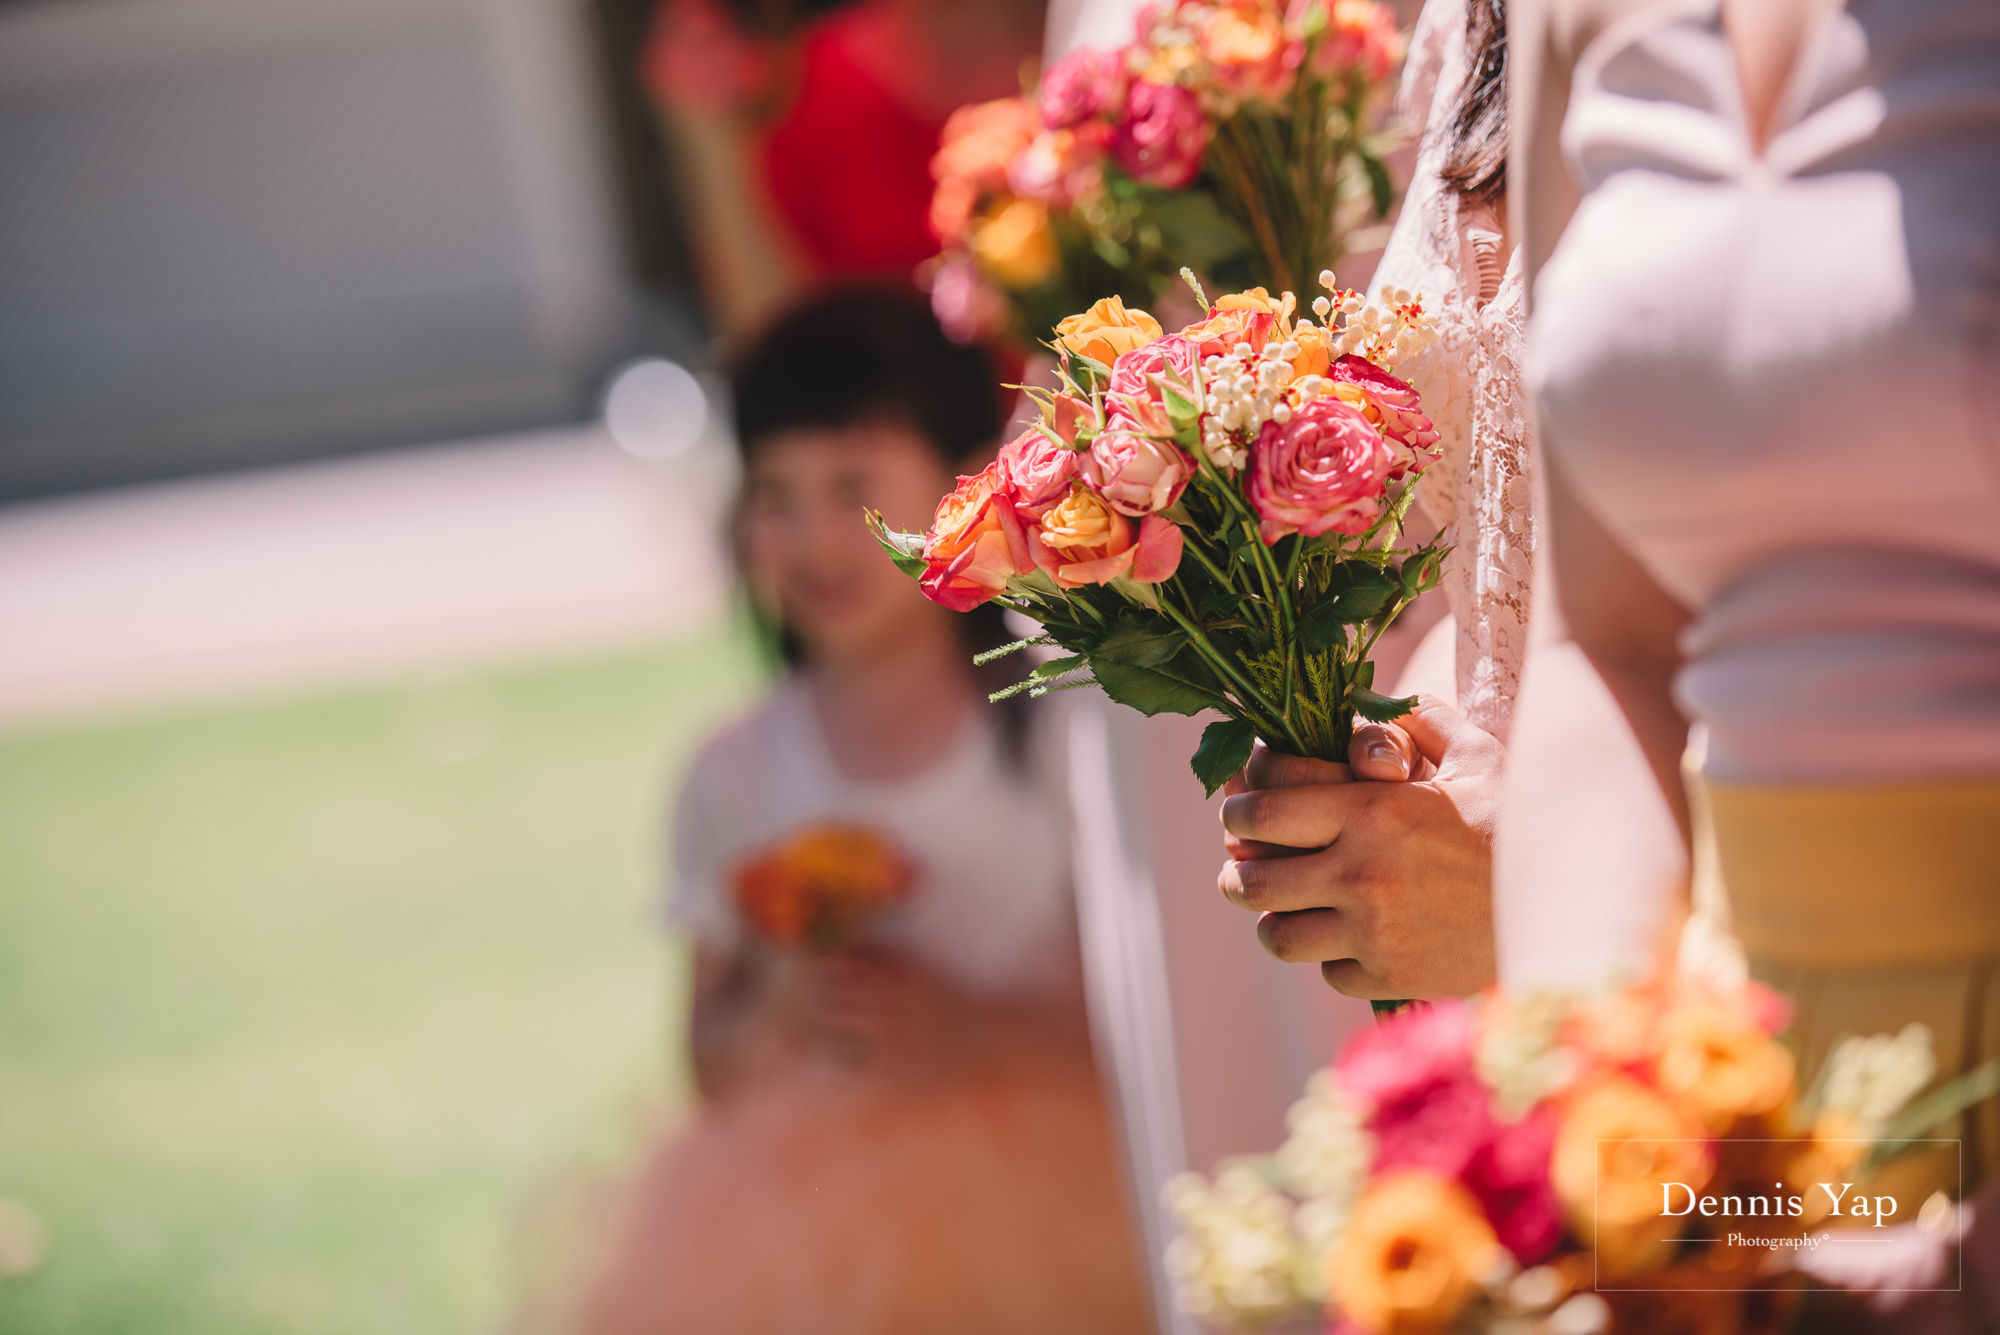 ethan janet perth wedding reception and garden ceremony in lamonts dennis yap photography-22.jpg